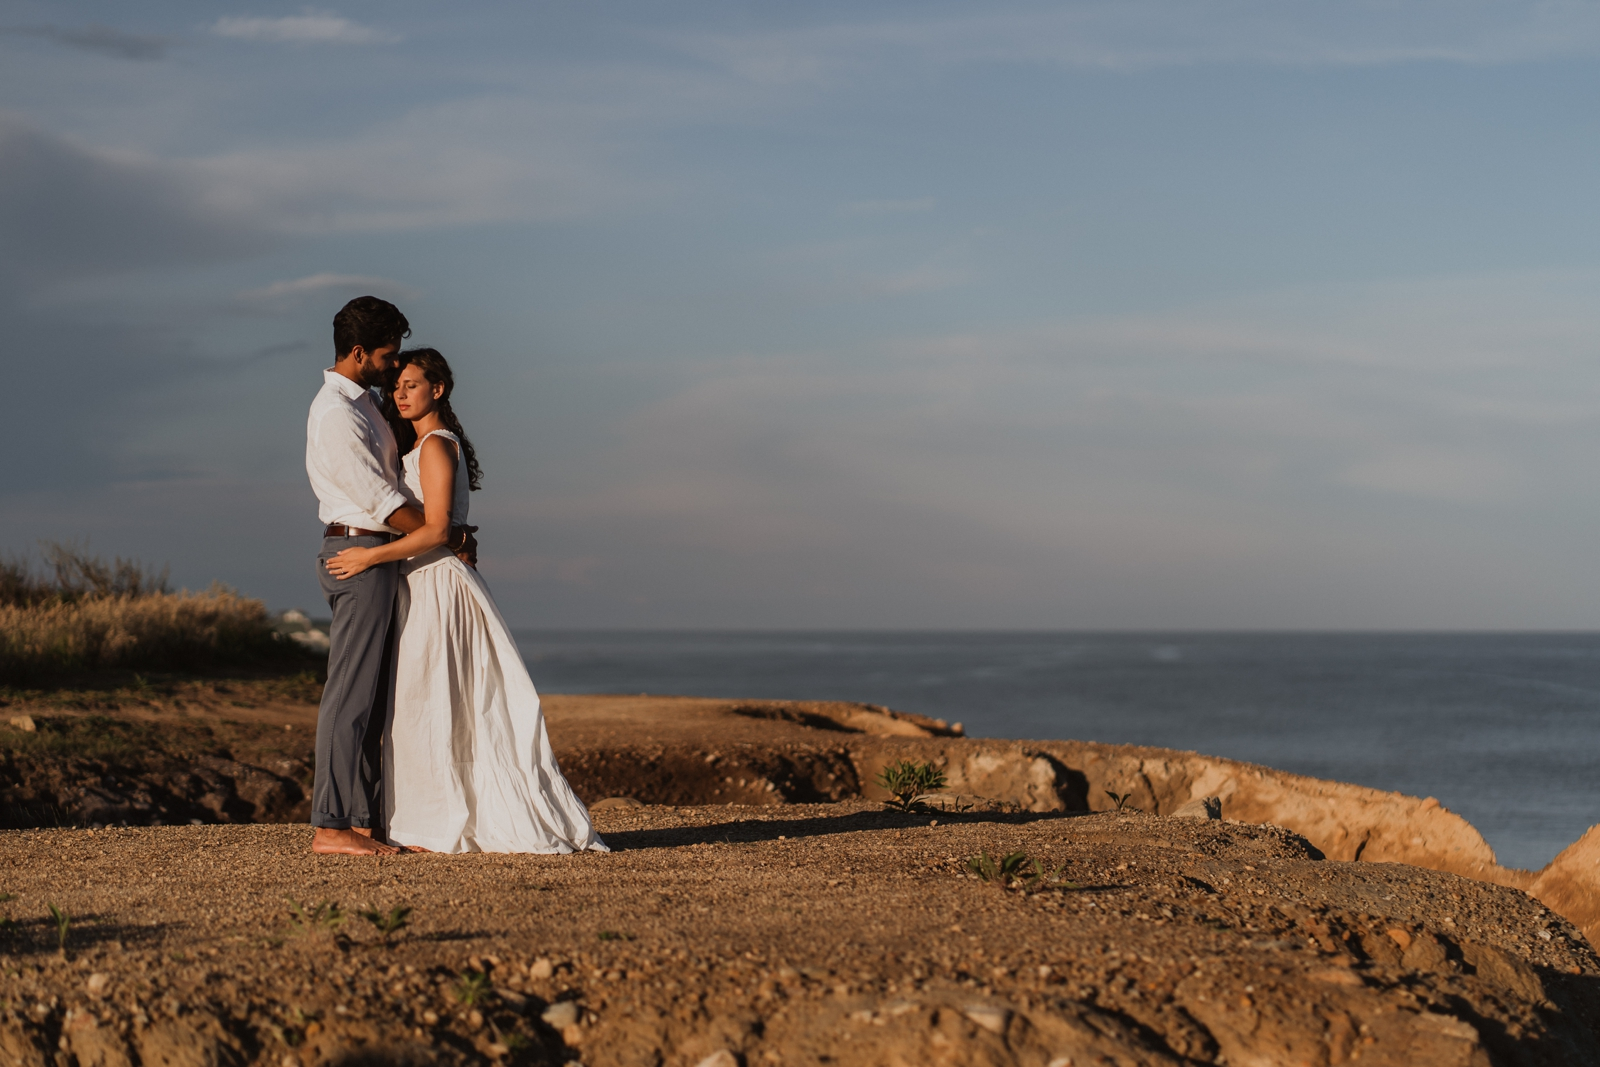 JJP_Nikki & Bud_Shadmoor_Montauk_NY_Cliff Engagement Session29.jpg_blog.jpg